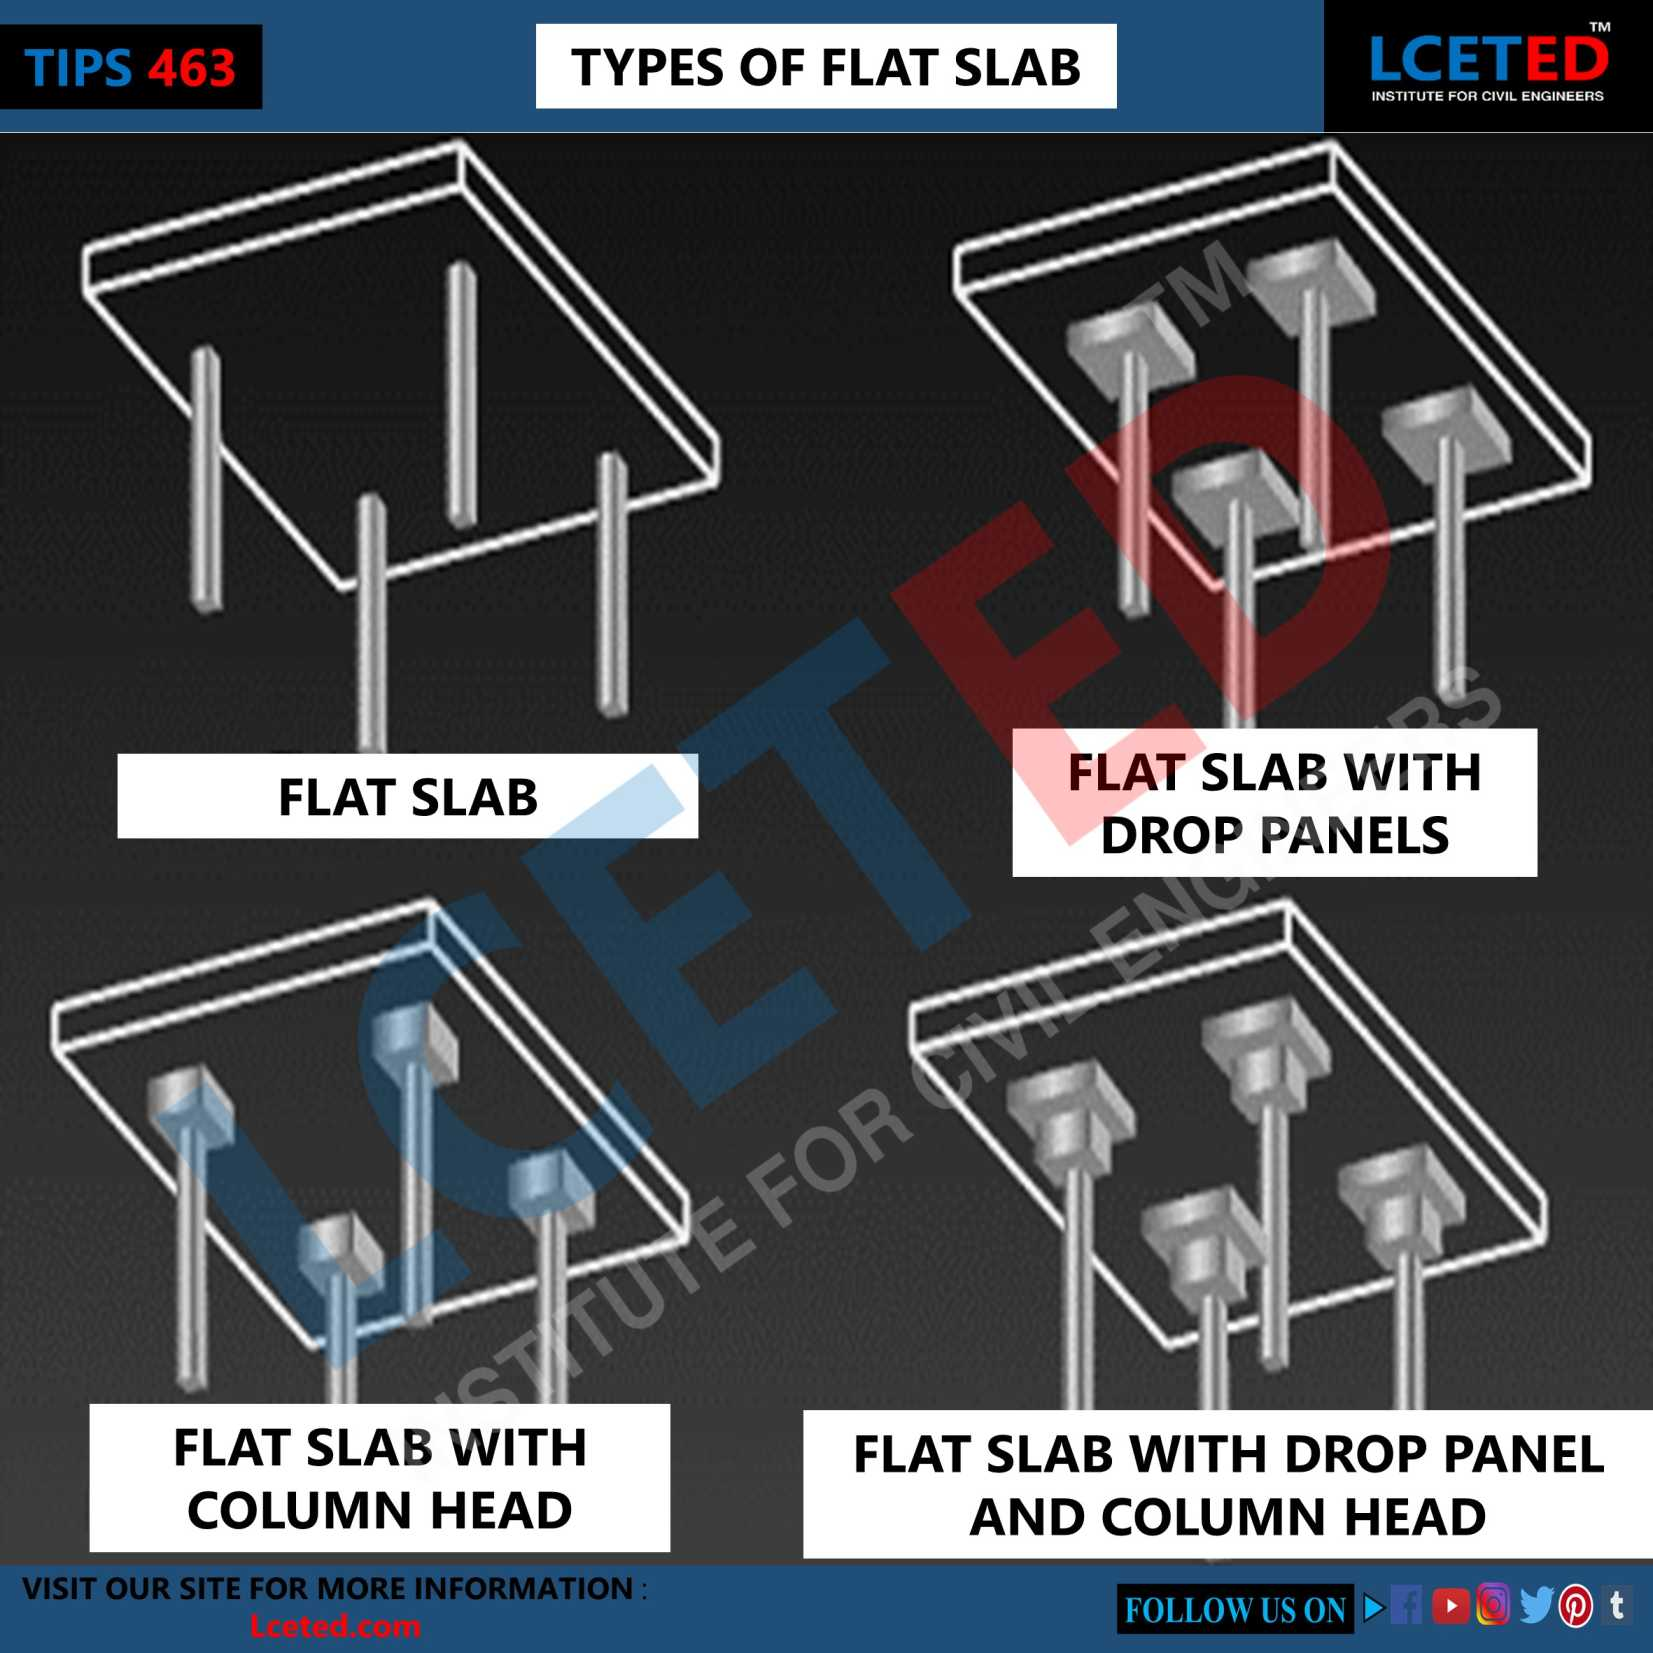 What Is Flat Slab?